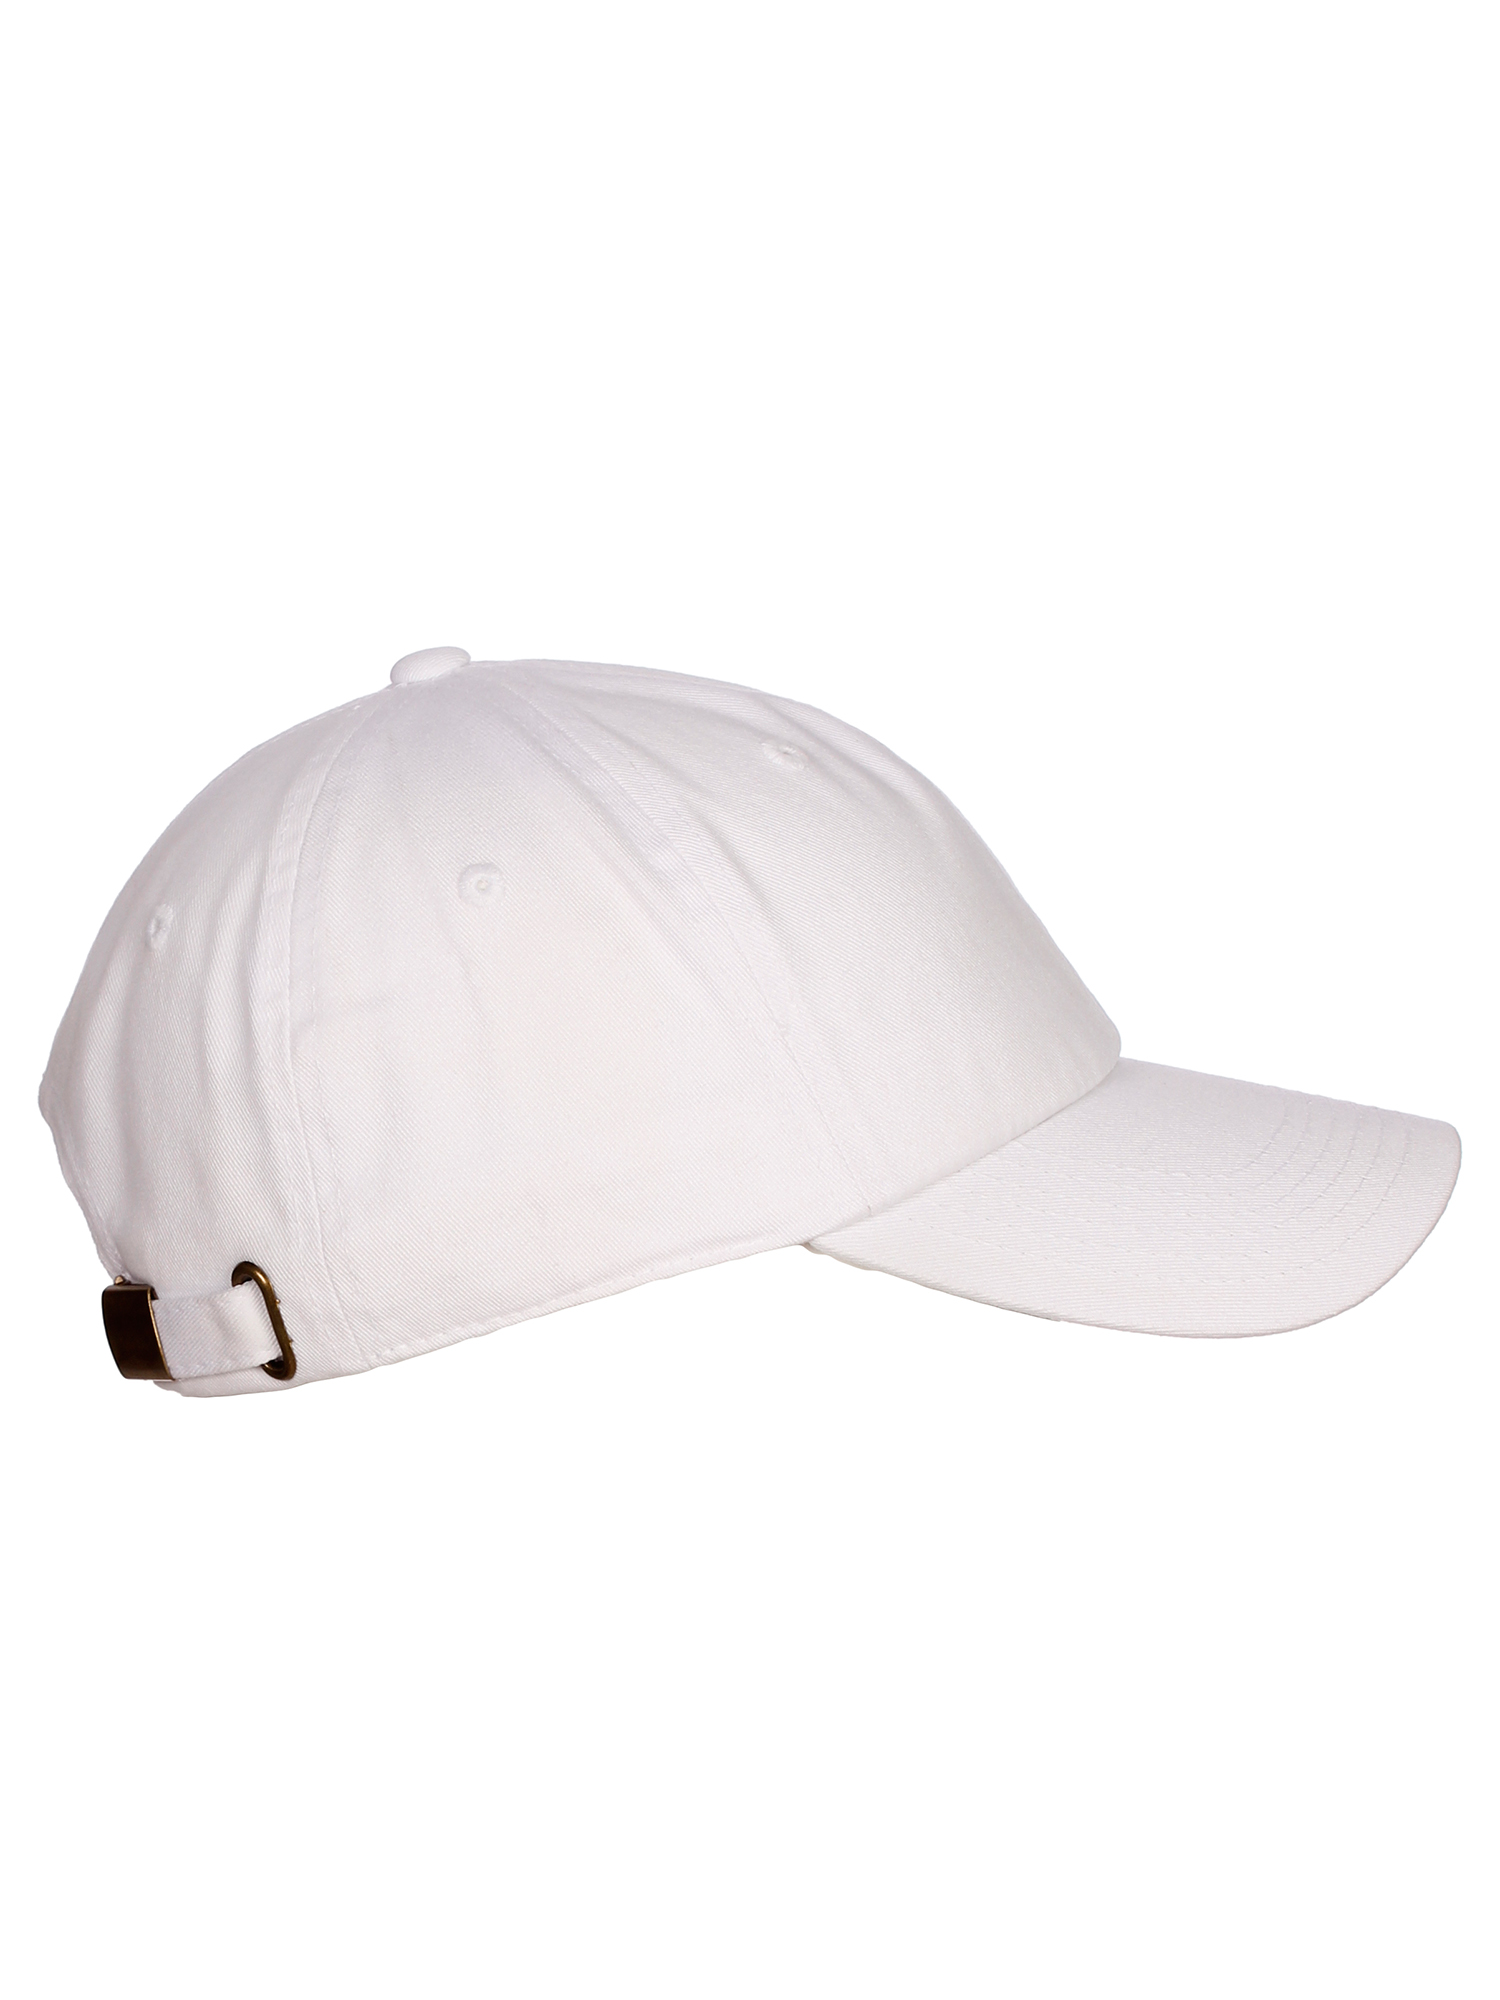 ... Cities Plain Dad Hat 100 Cotton Unstructured Unisex Cap Adj Strap 3pk -  White Black Camo. About this product. Picture 1 of 11  Picture 2 of 11   Picture ... c7cb5661806a